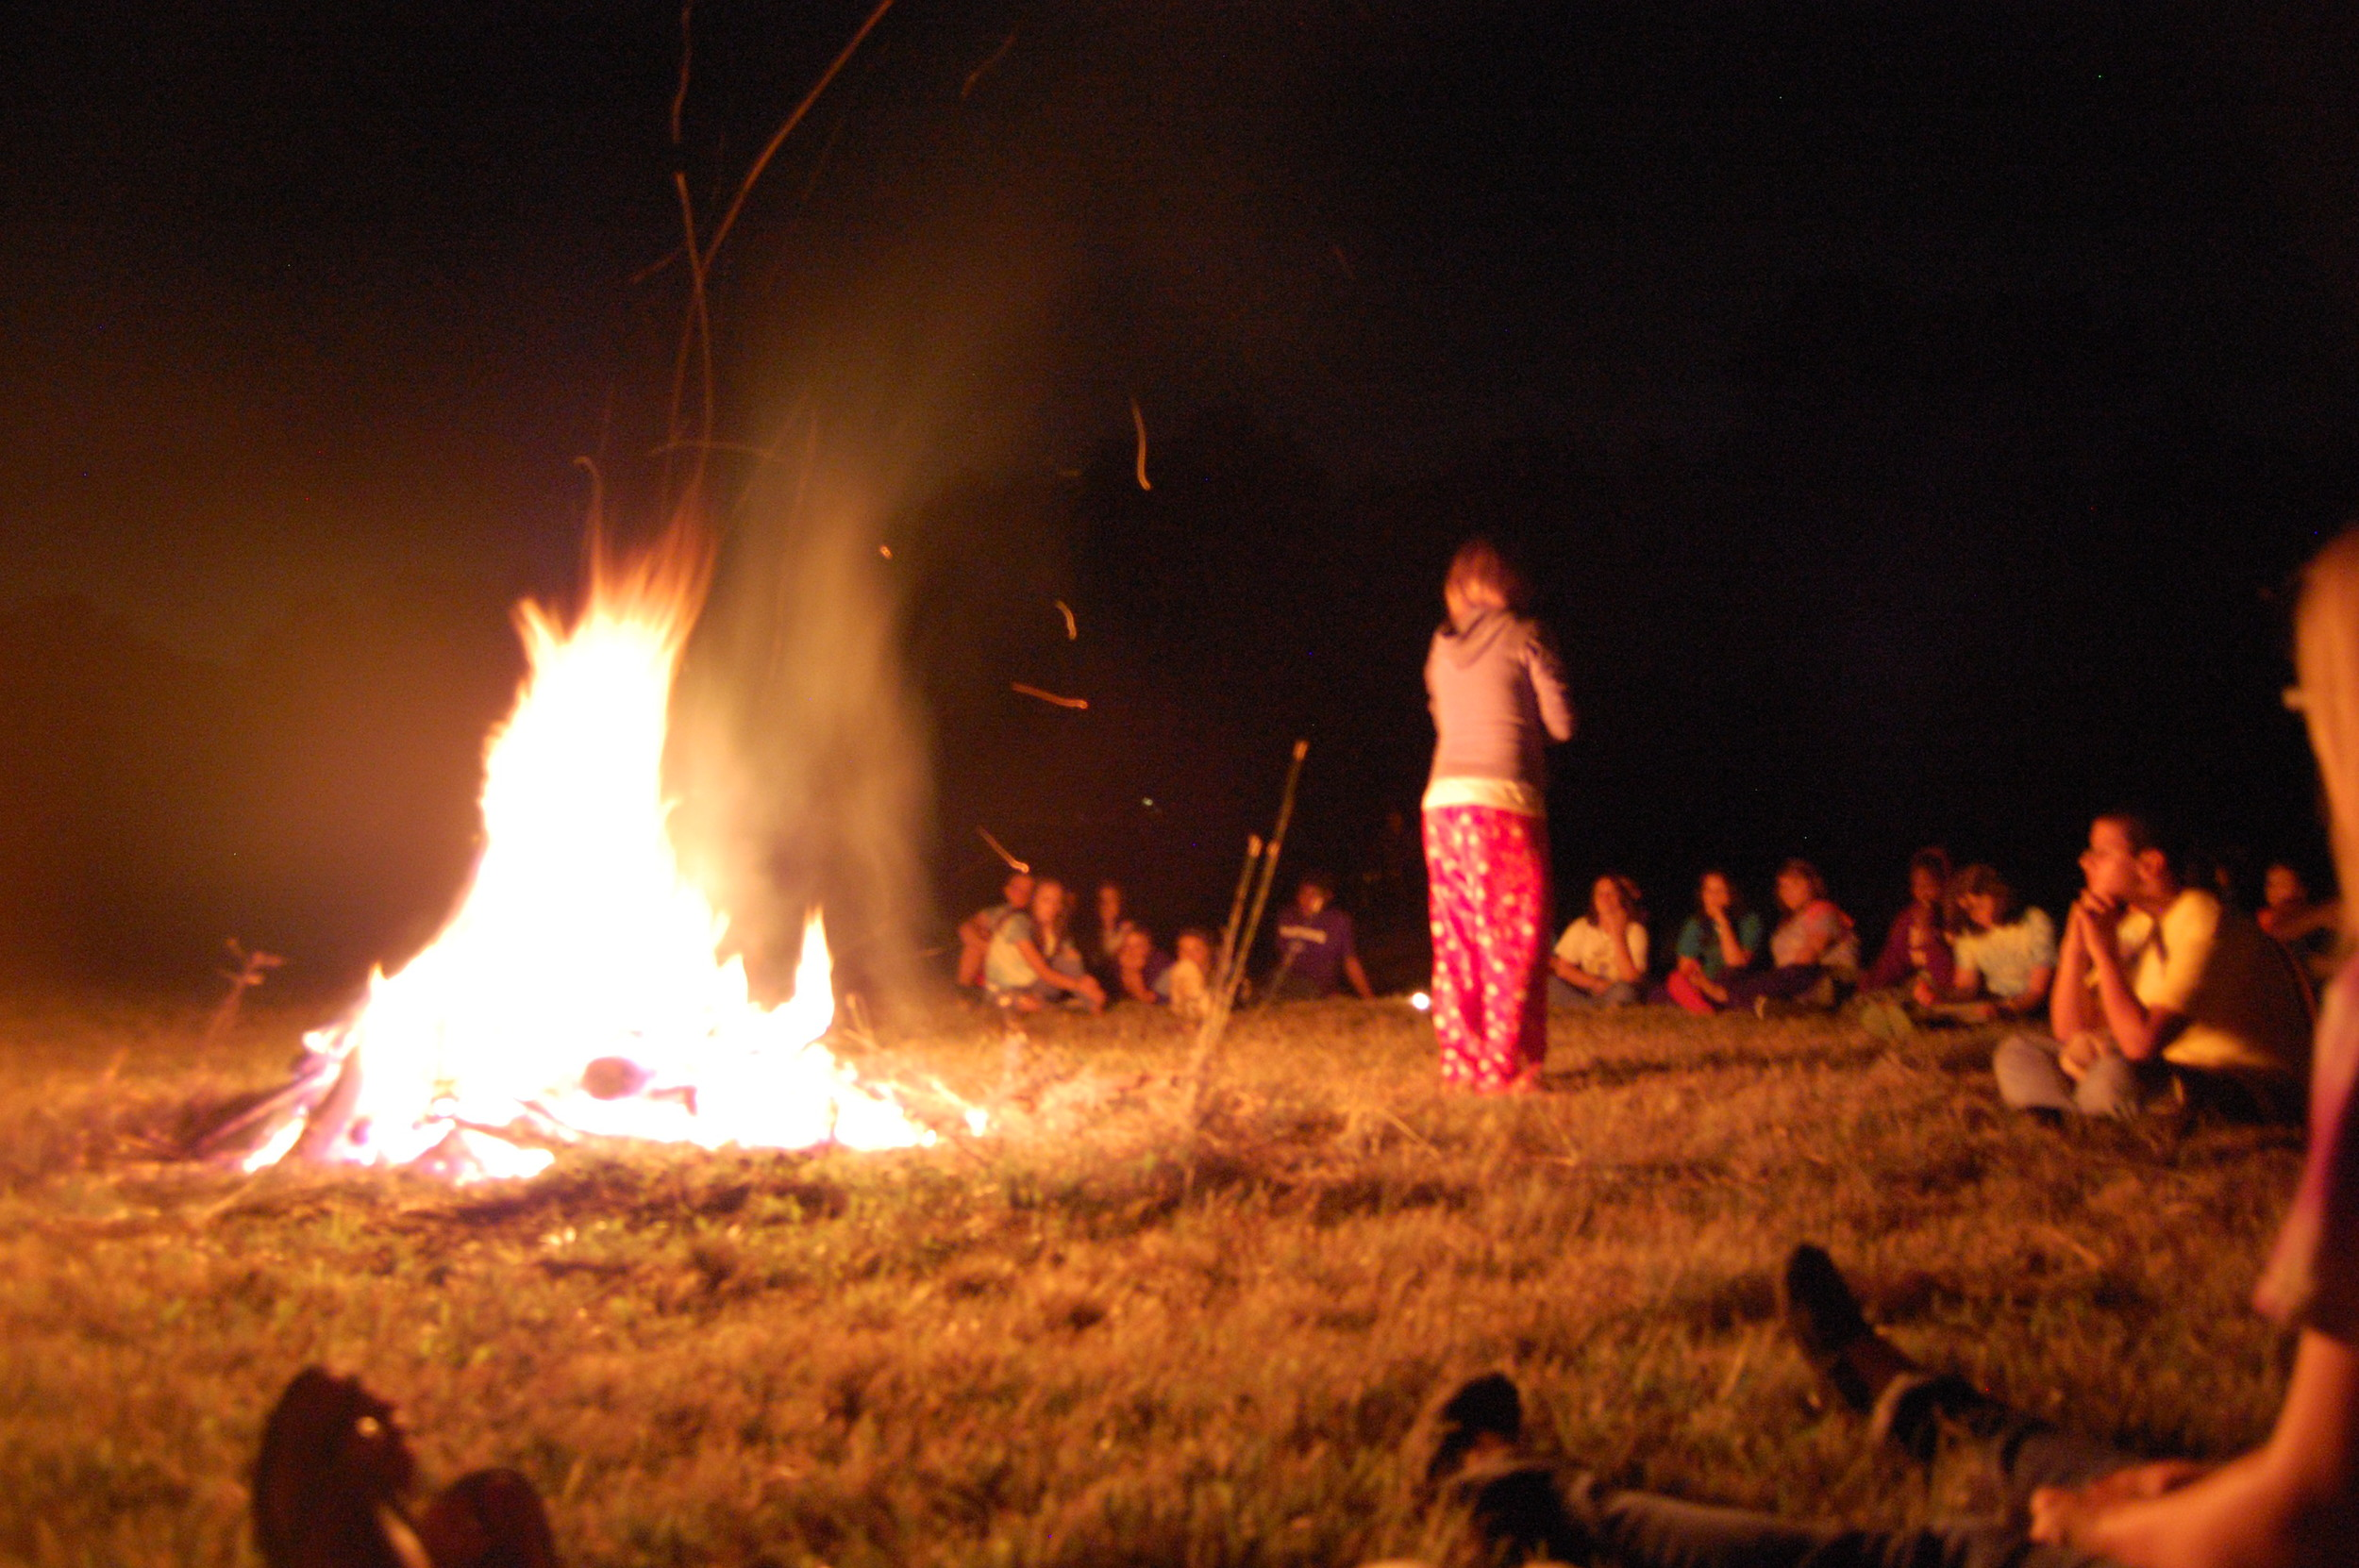 End of Camp Bonfire